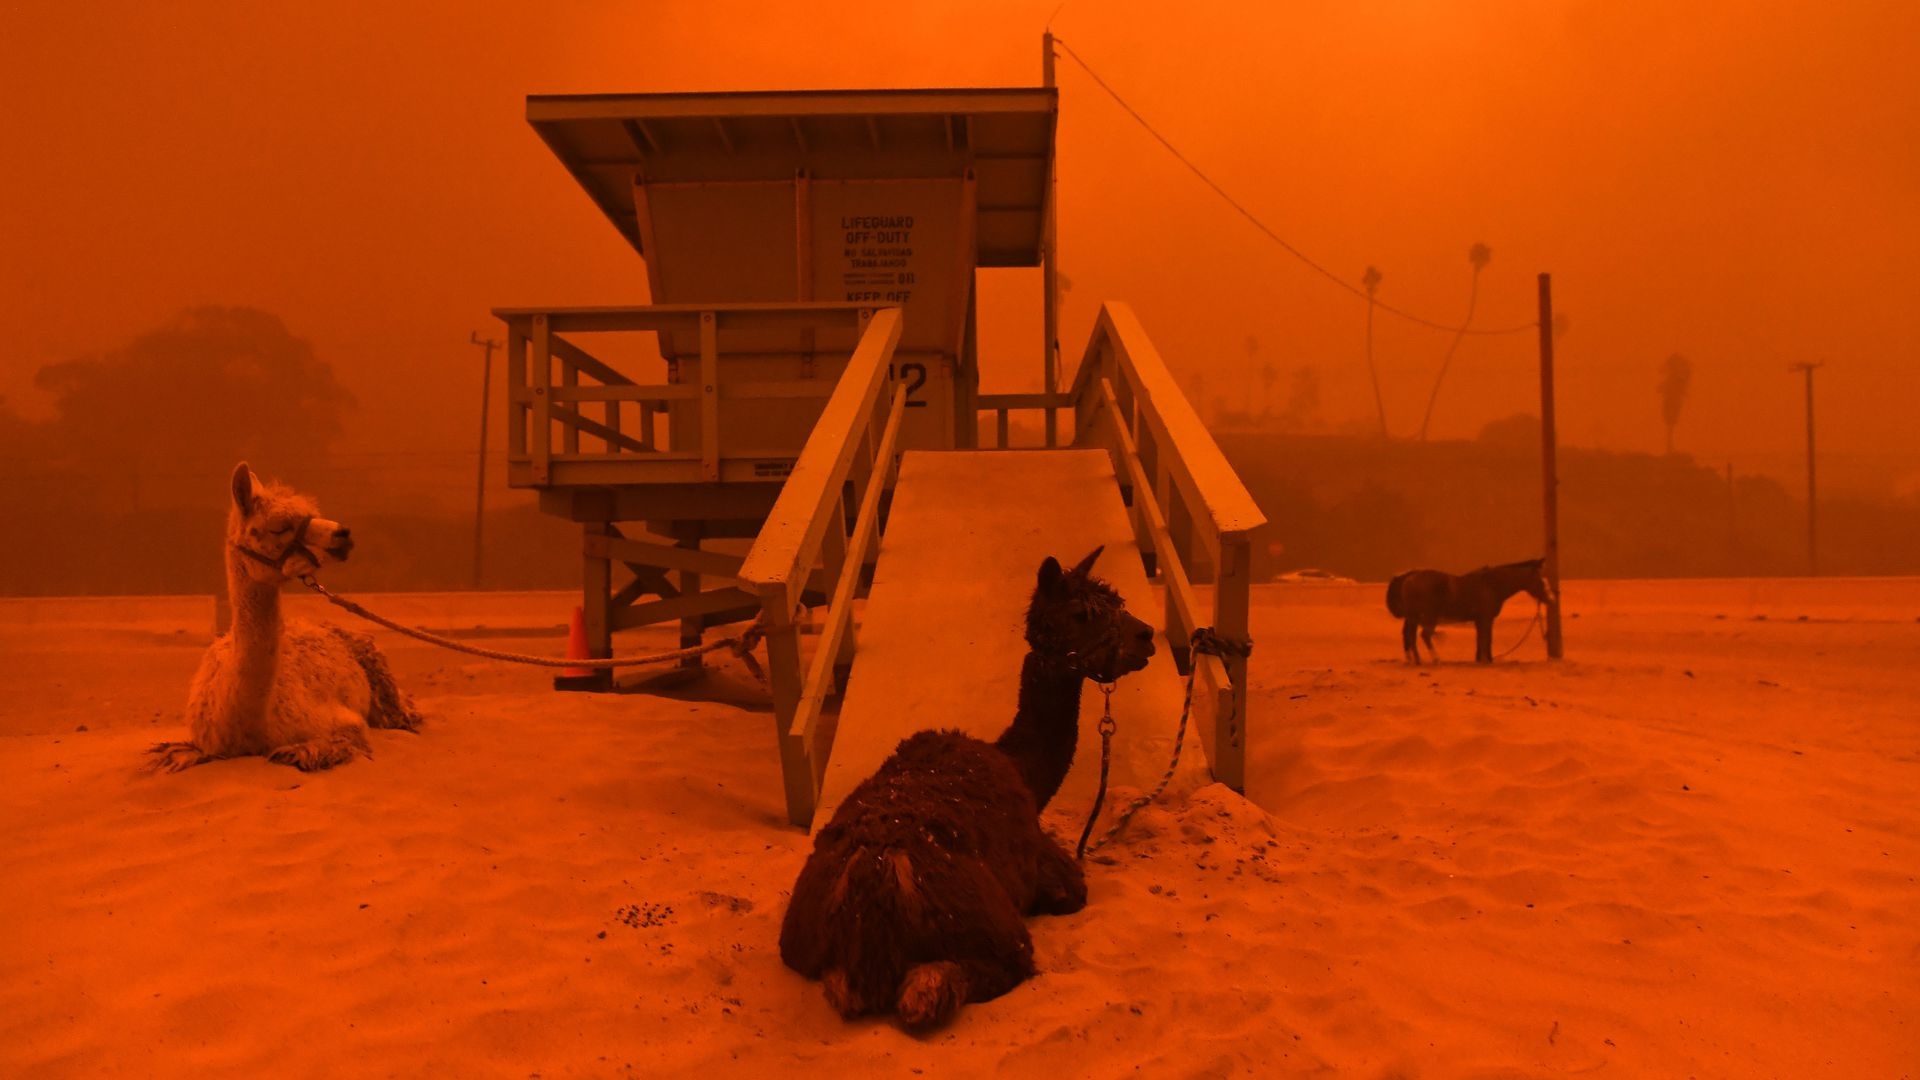 One of the most startling photographs from the Woolsey fire, llamas tied to a lifeguard stand in Malibu—an image we just can't forget. Photo: Wally Skalij/The Los Angeles Times via Getty Images